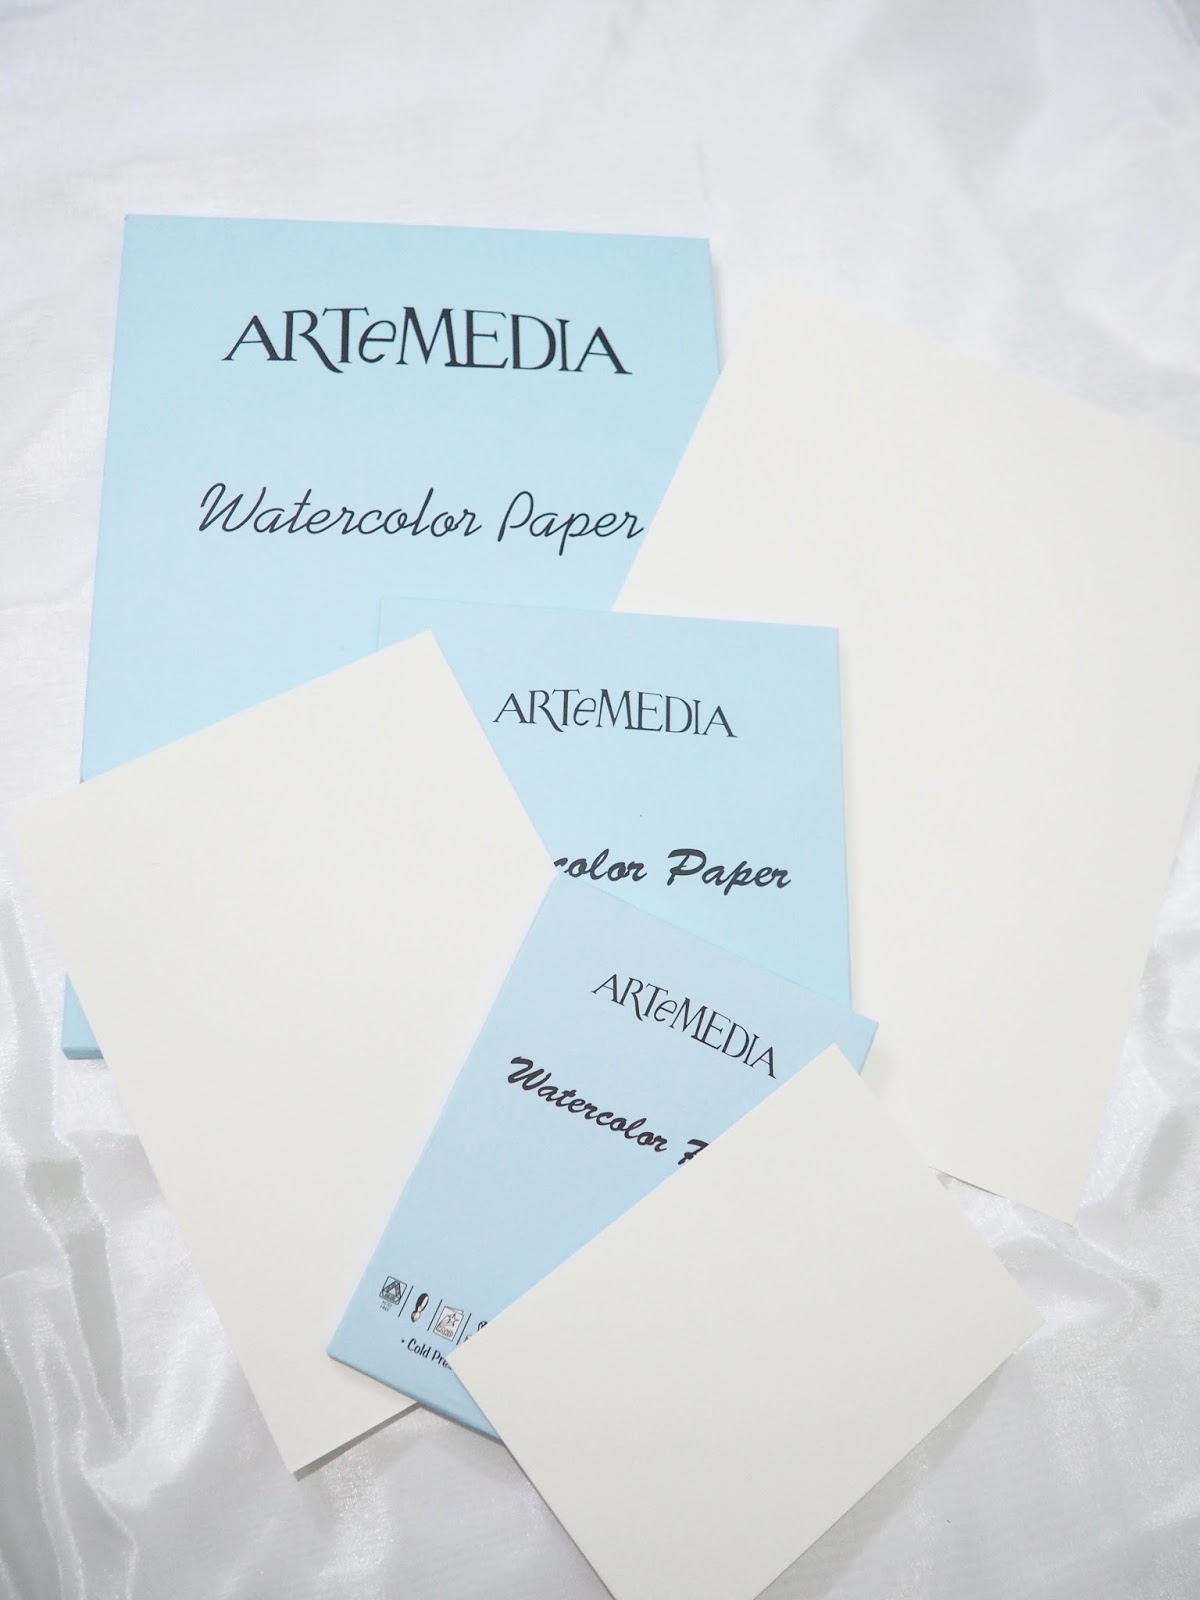 artemedia watercolor paper